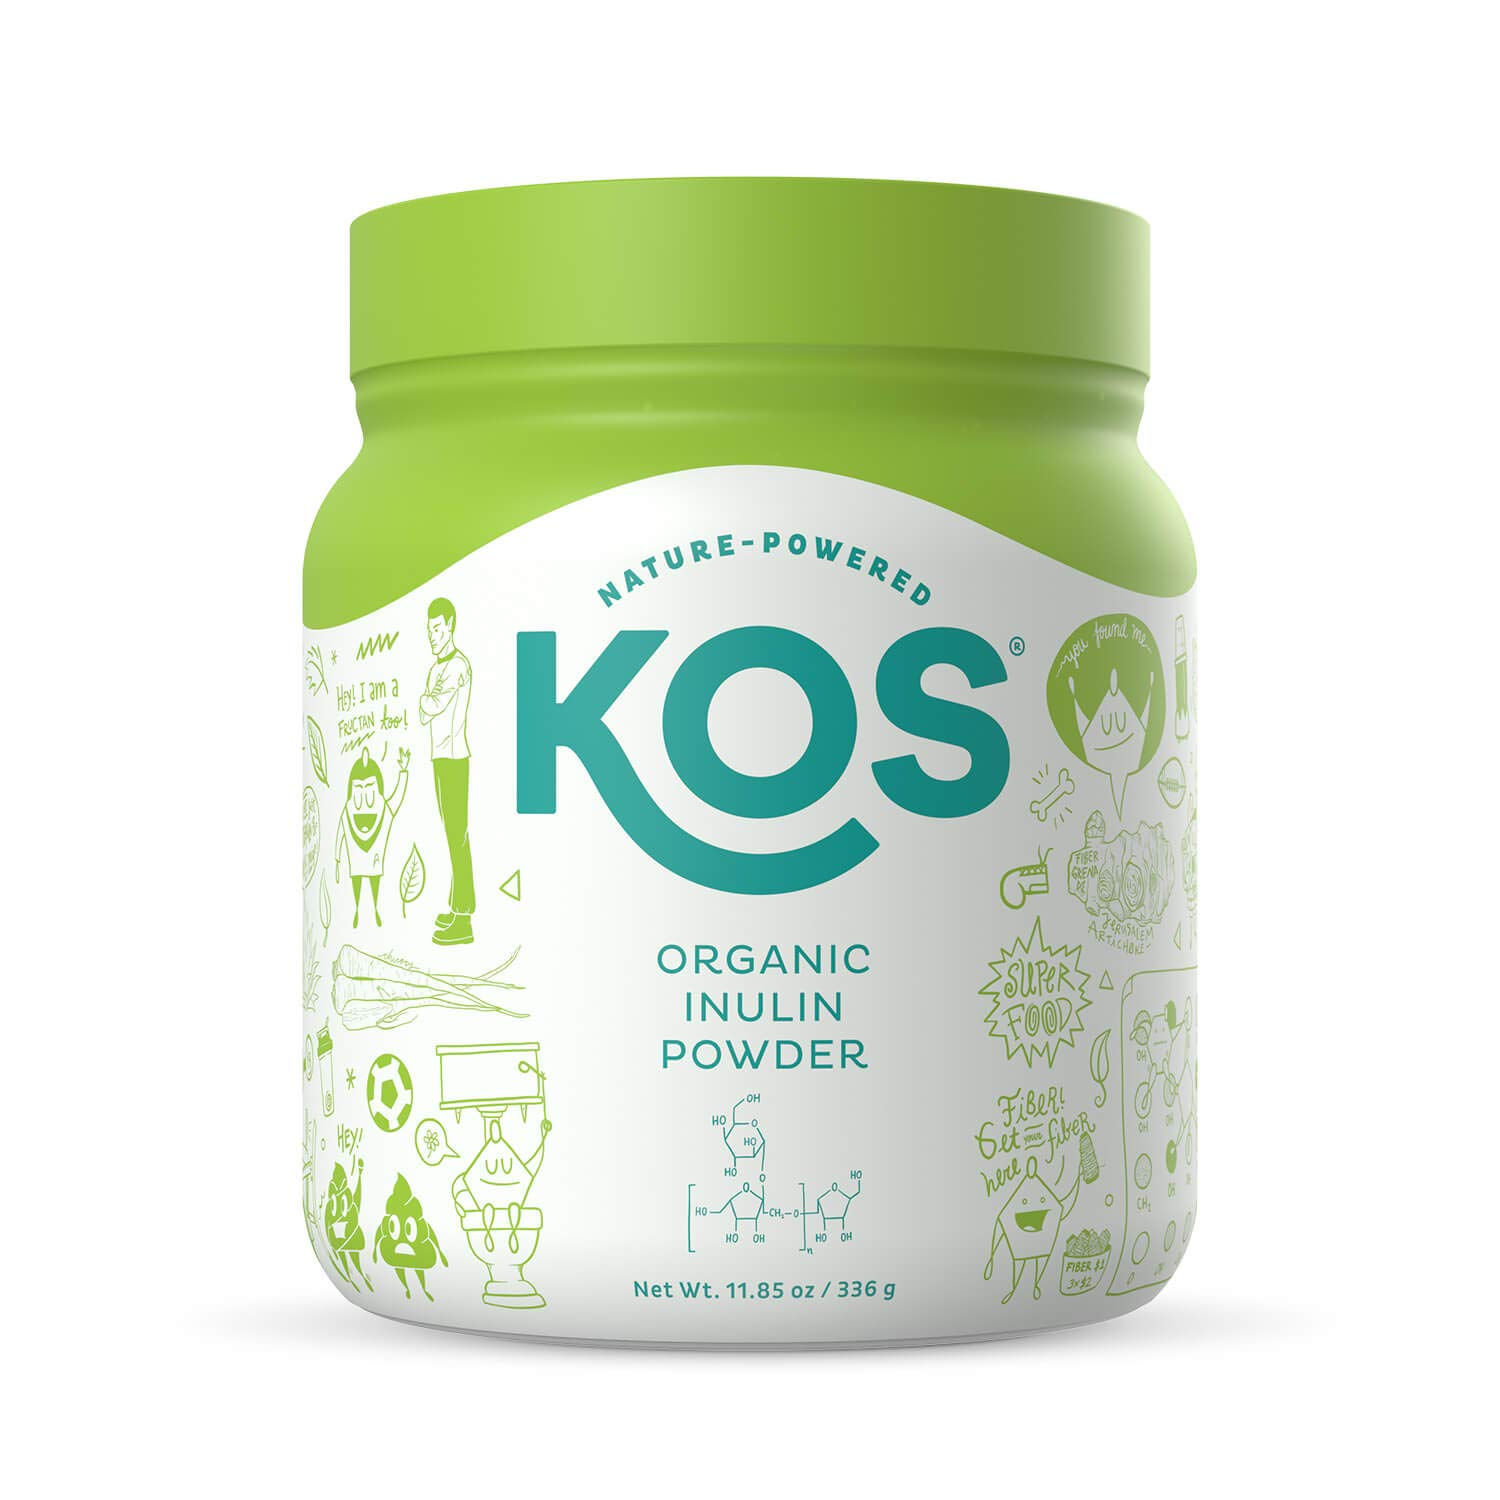 KOS Organic Inulin Powder - Unflavored Inulin (Agave) Prebiotic Intestinal Support Powder - USDA Organic, Digestive Health Promoting, Gluten Free Plant Based Ingredient, 336g, 112 Servings